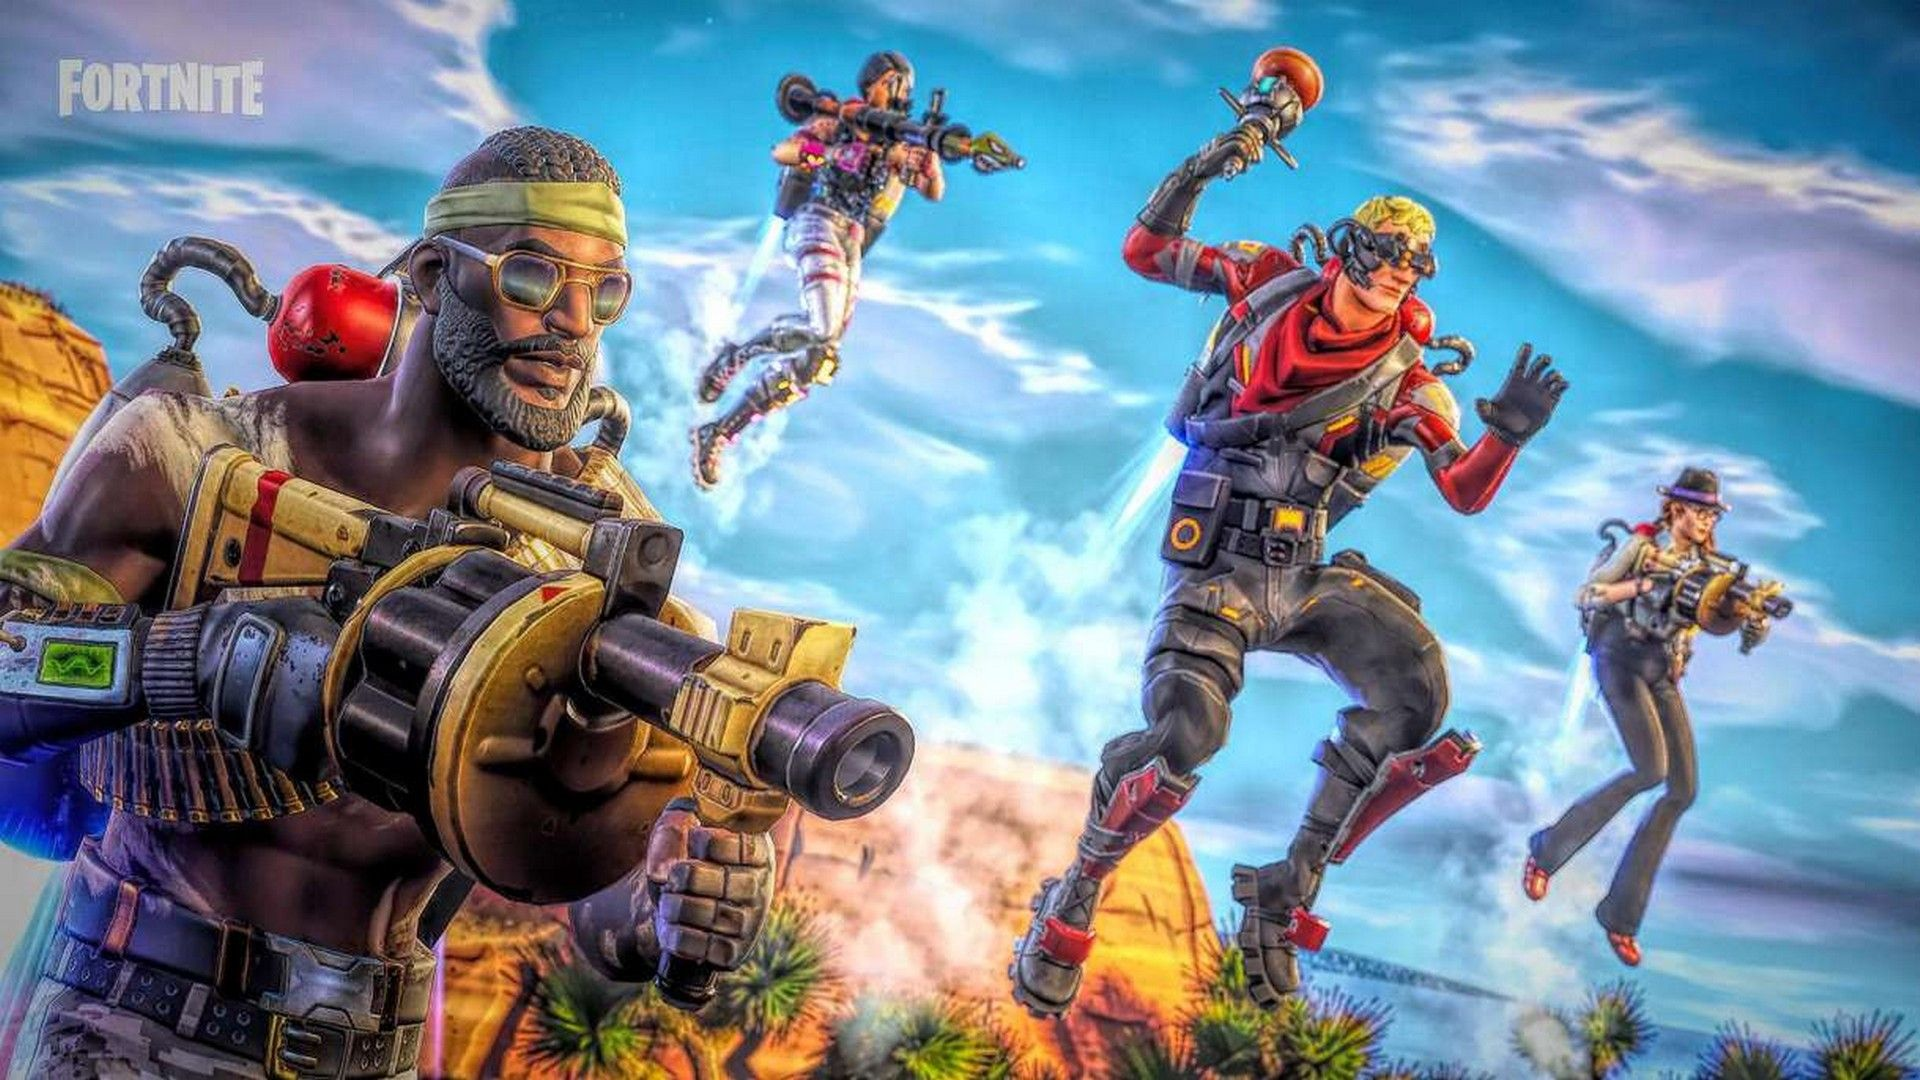 Fortnite Background Wallpaper Hd 2020 Live Wallpaper Hd High Resolution Wallpapers Best Wallpaper Hd Android Lock Screen